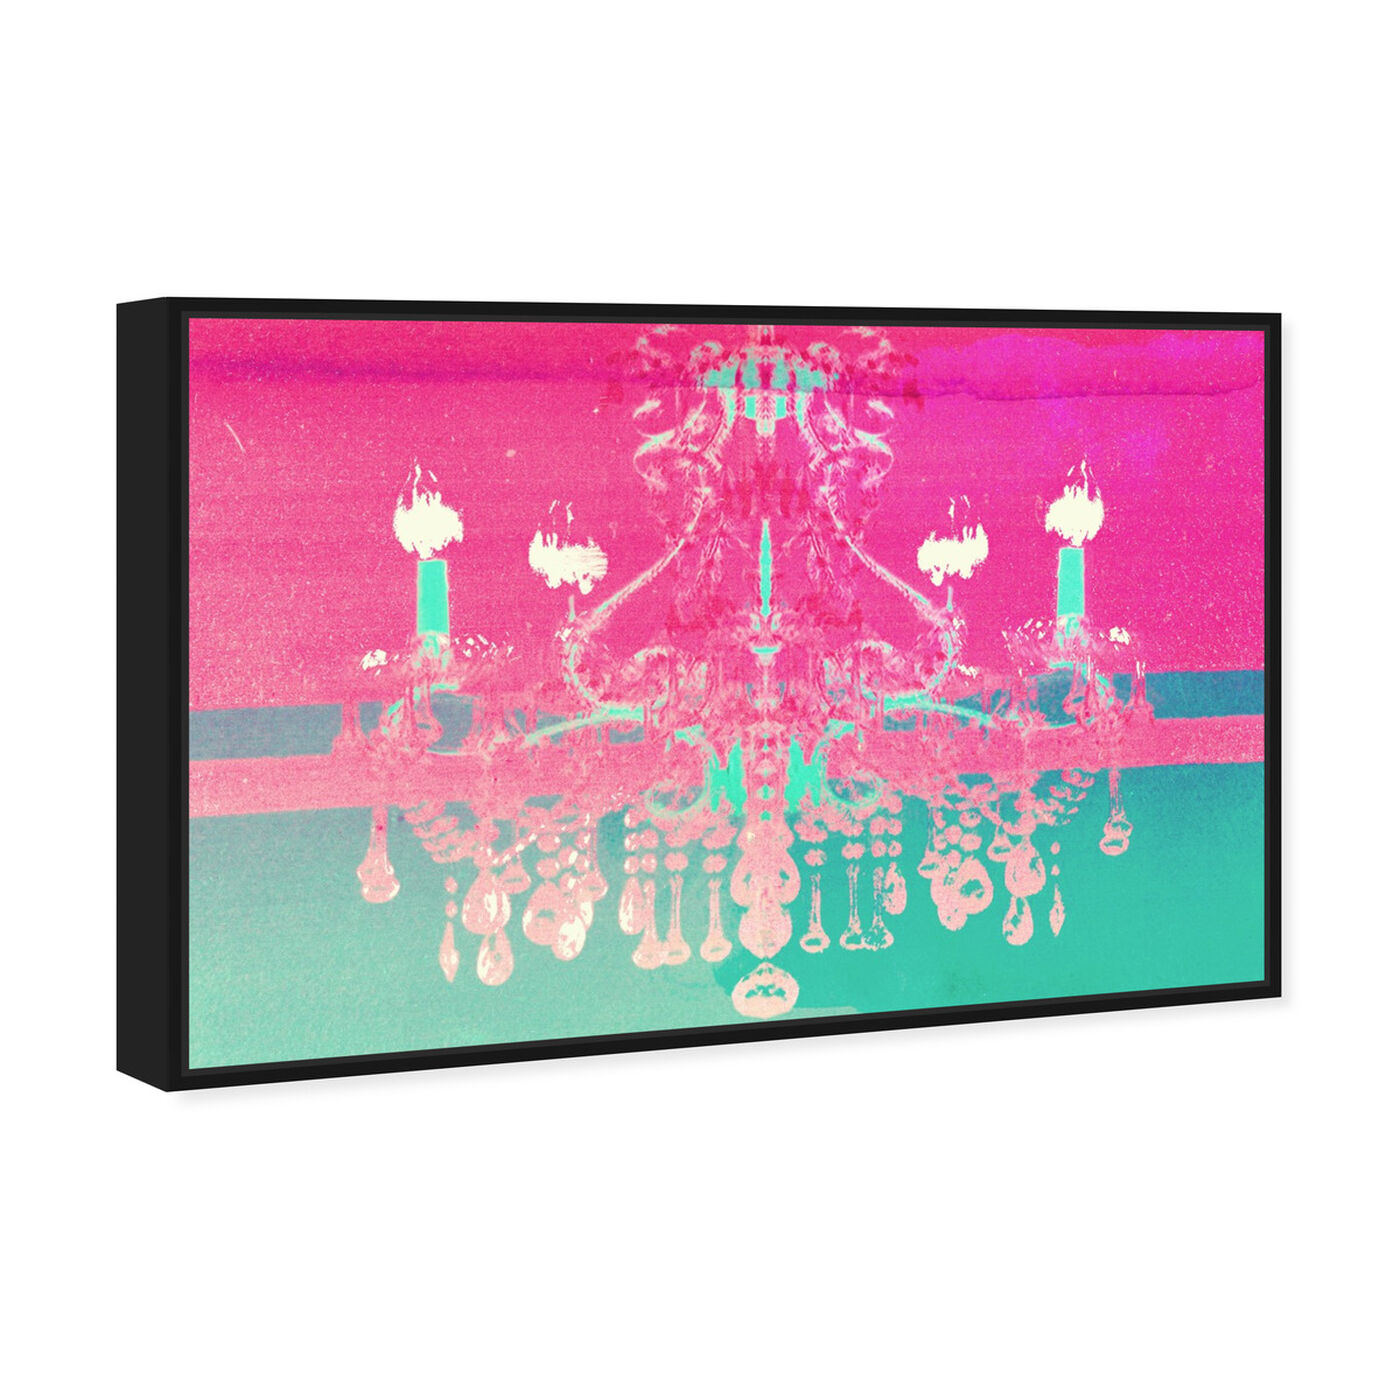 Angled view of Adagio for Strings featuring fashion and glam and chandeliers art.